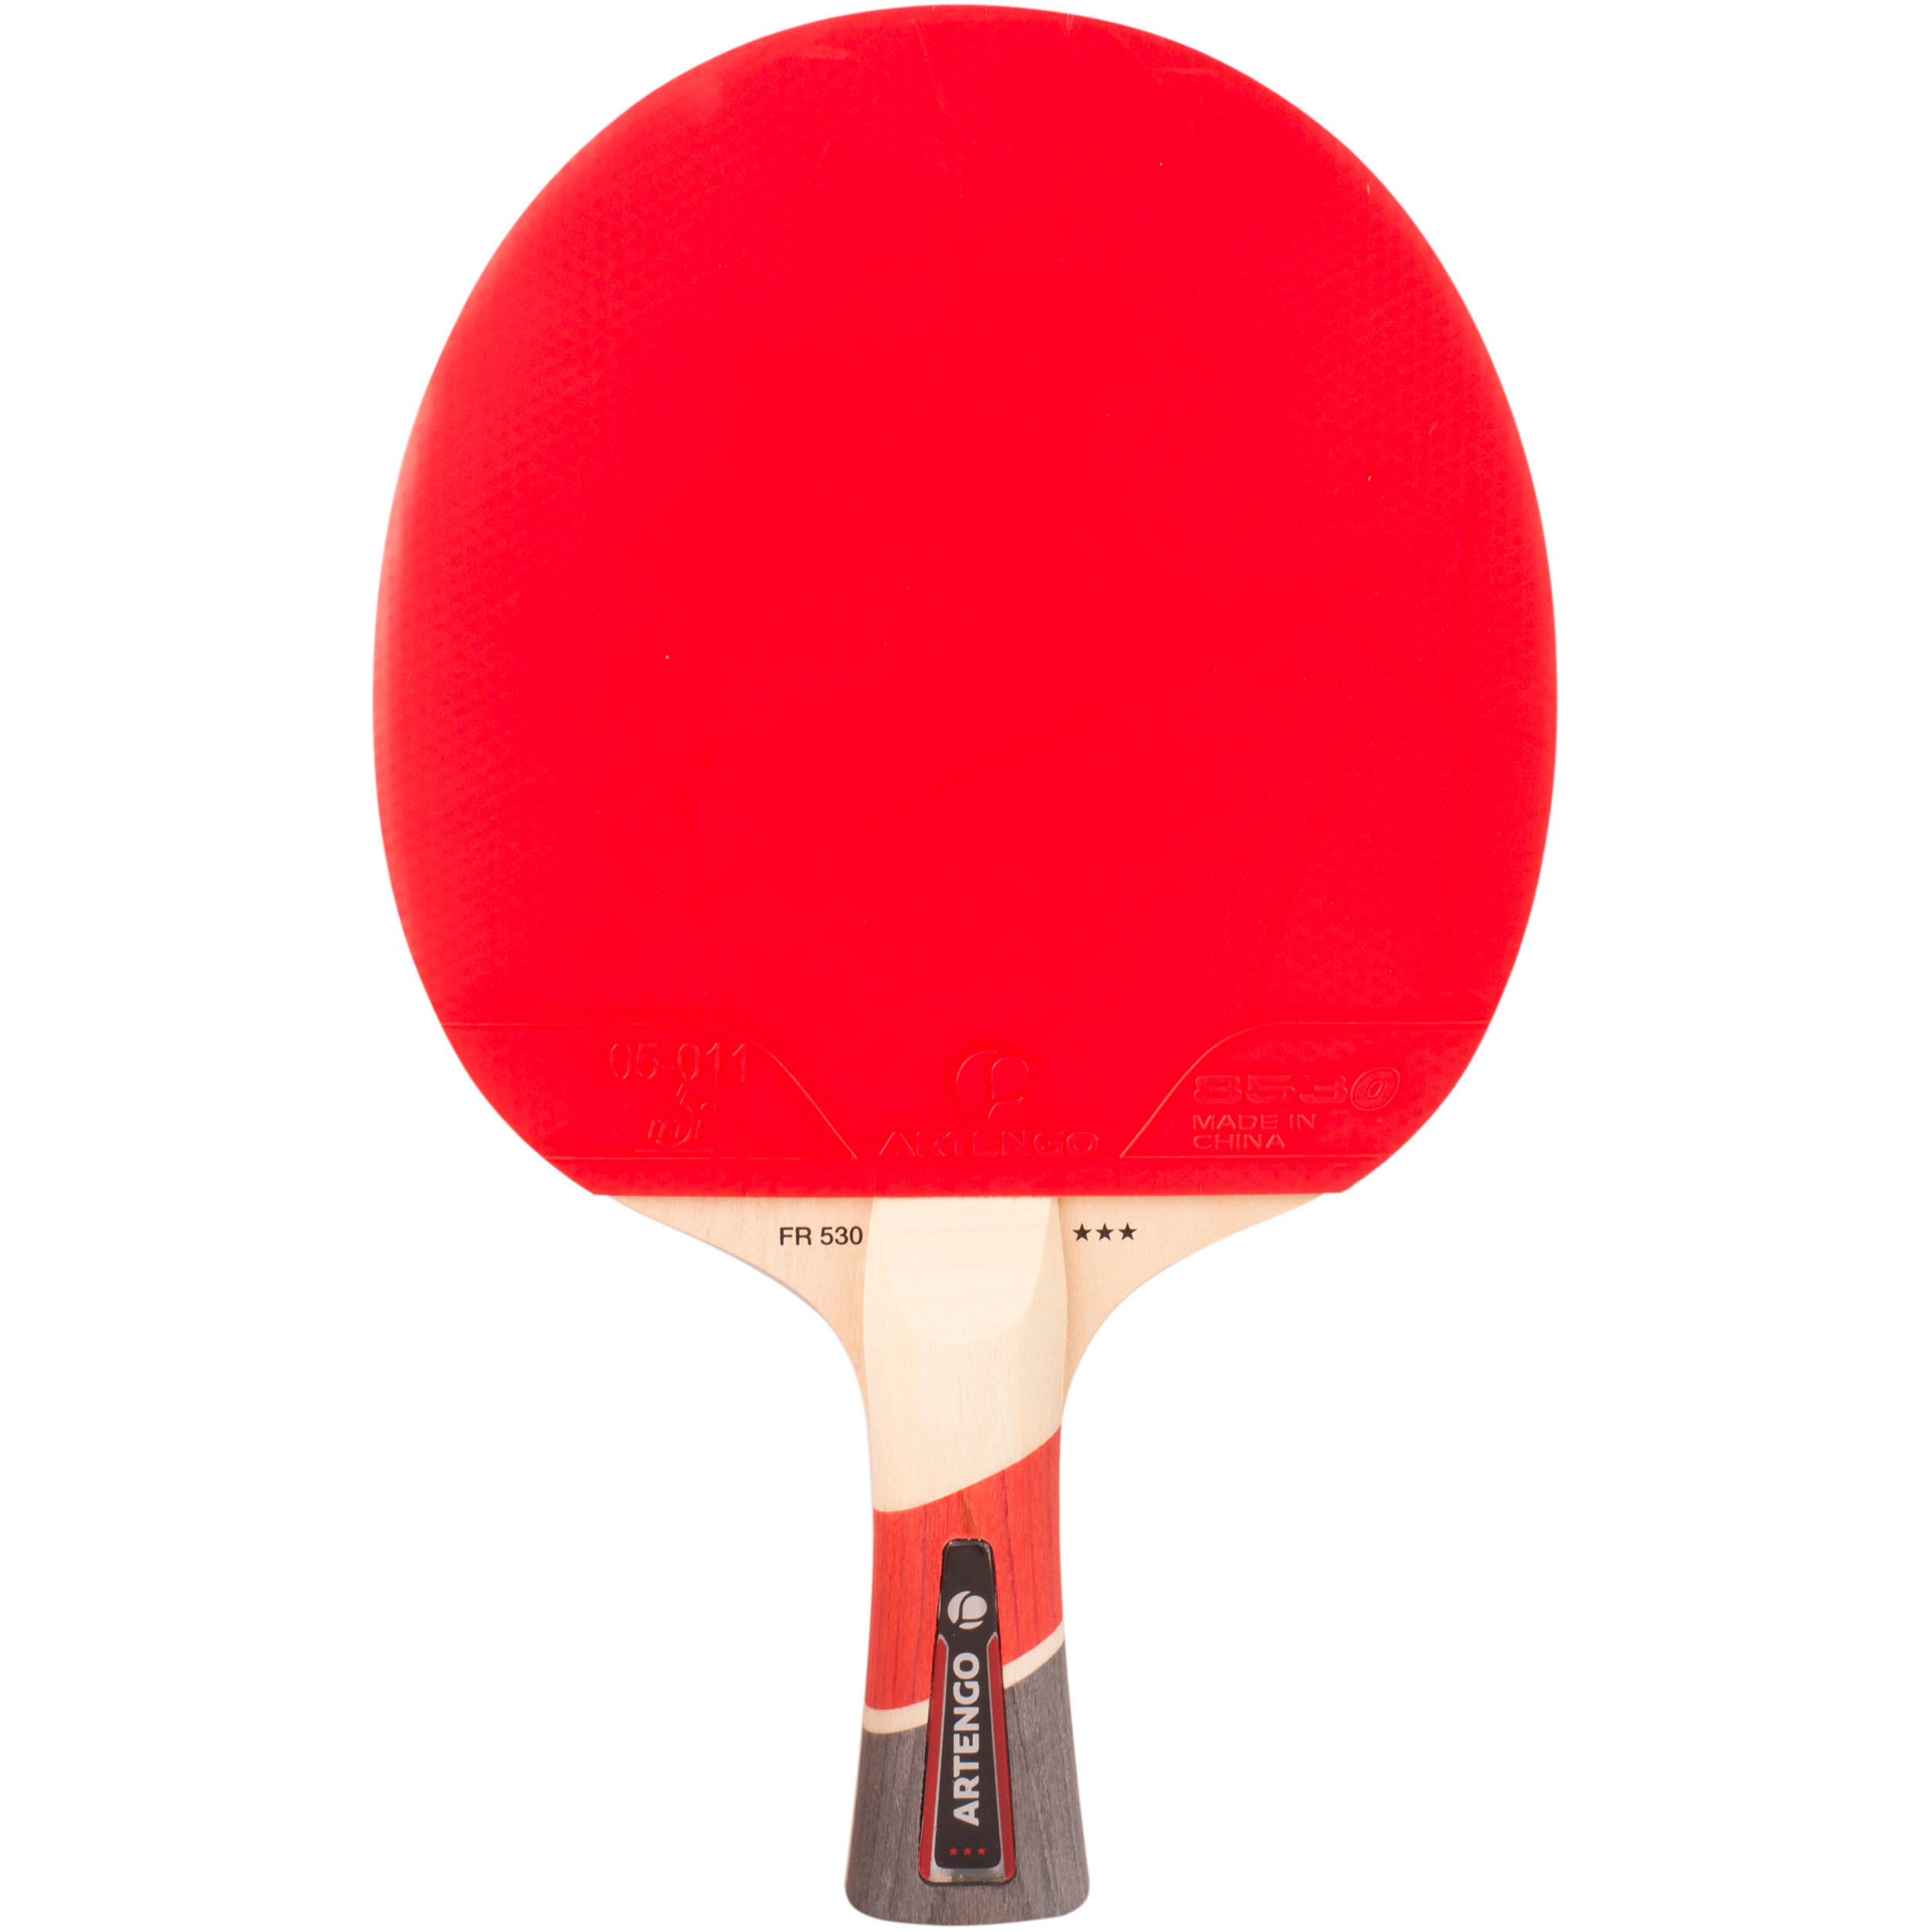 Set of 2 FR 530 Table Tennis Paddles and 3 FB 830+ Balls